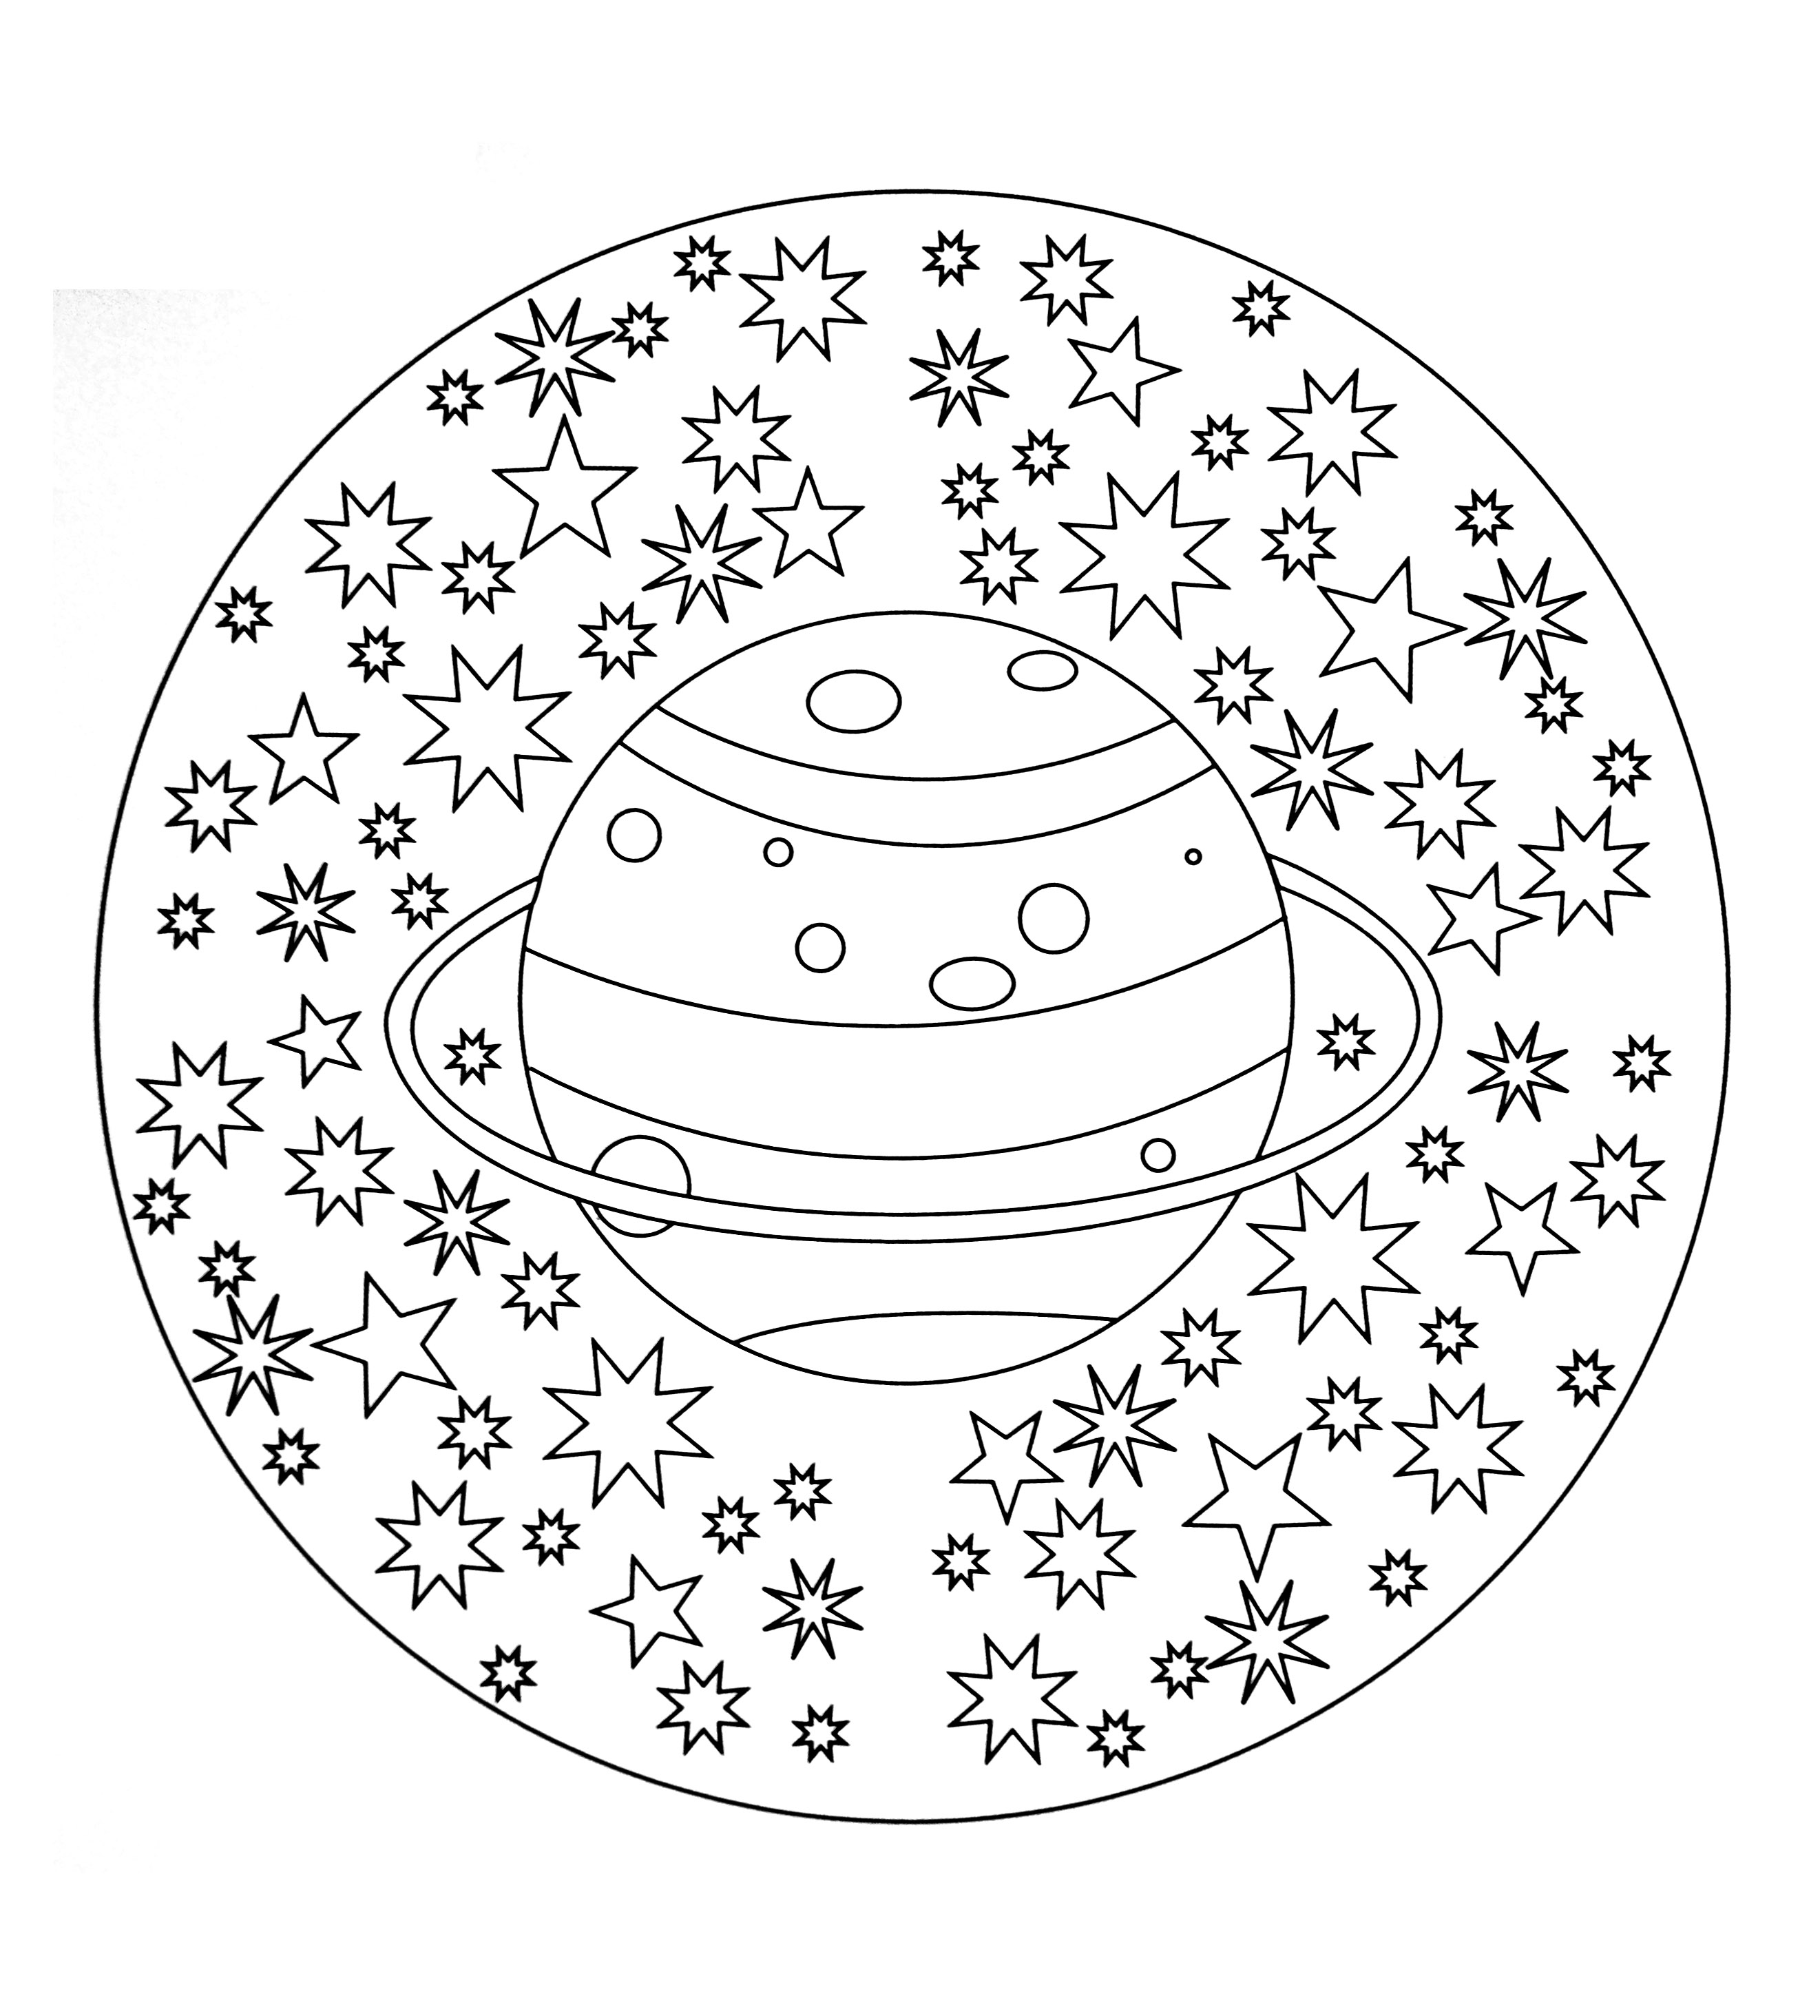 Simple mandala 19  Malas Coloring pages for kids to print  color